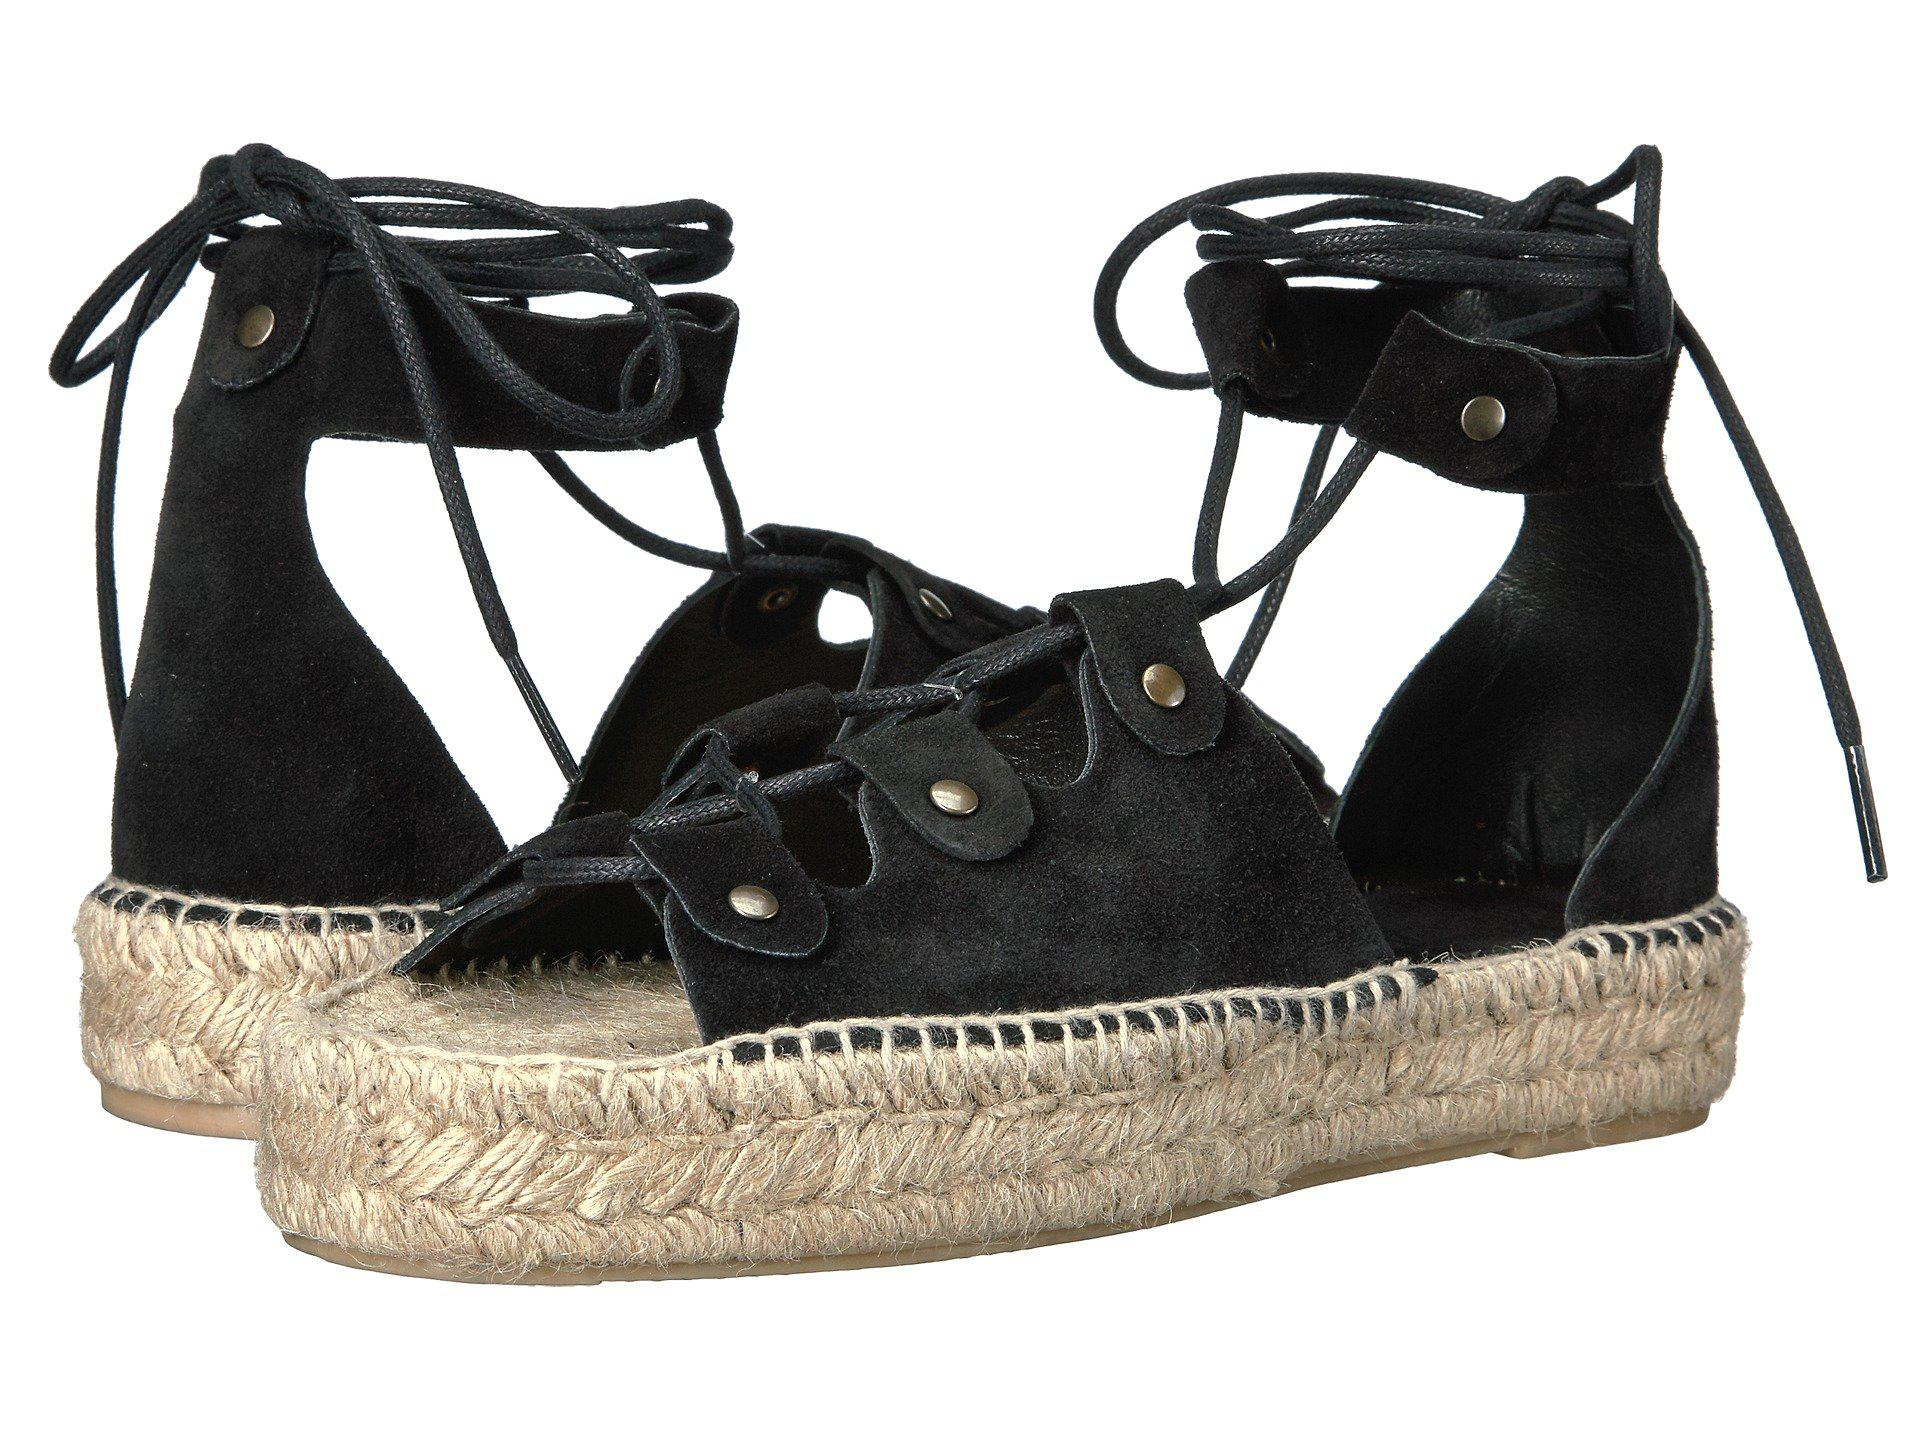 b9e3e8675aae Lyst - Soludos Ghillie Lace-up Suede Platform Sandal in Black